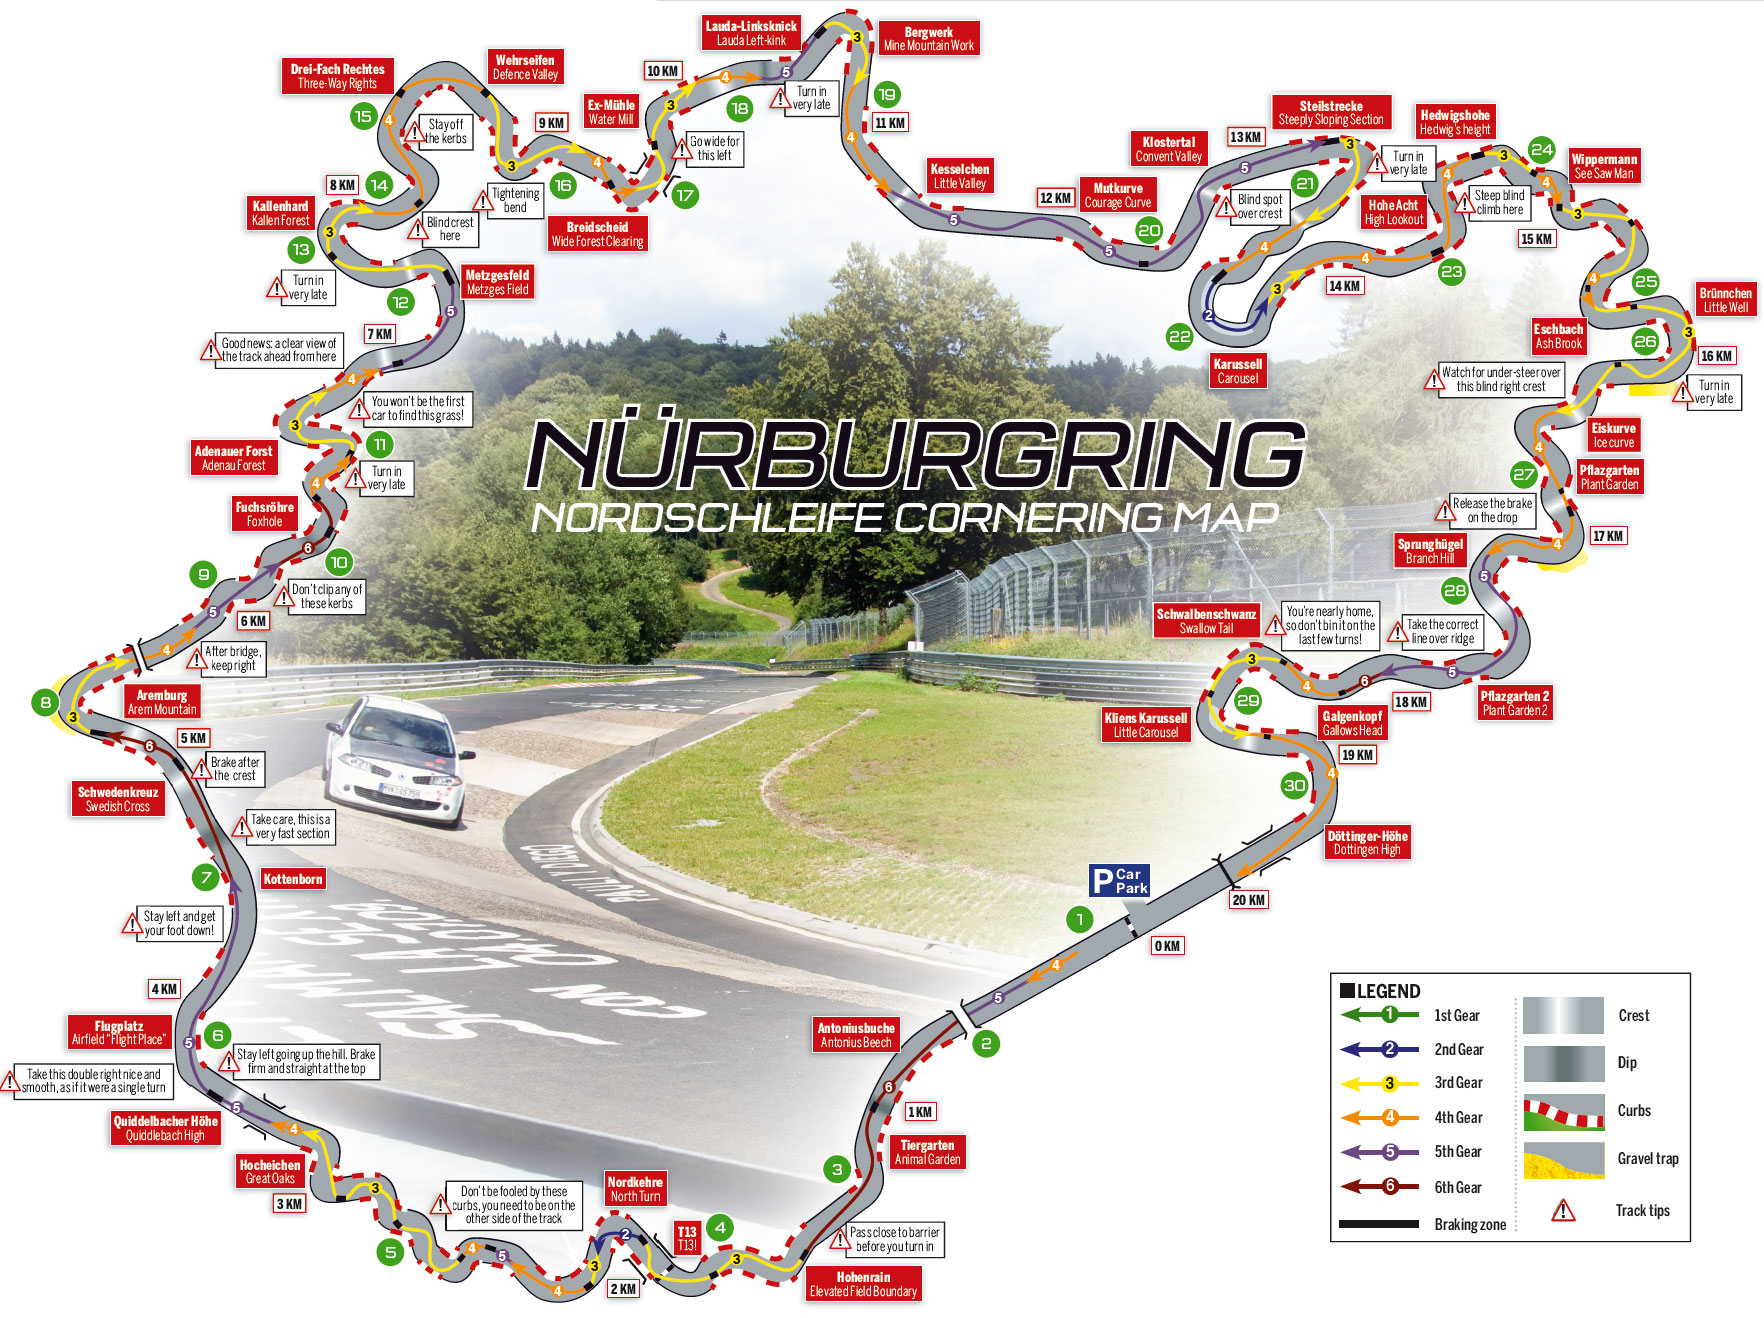 nurburgring-cornering-map-guide-download